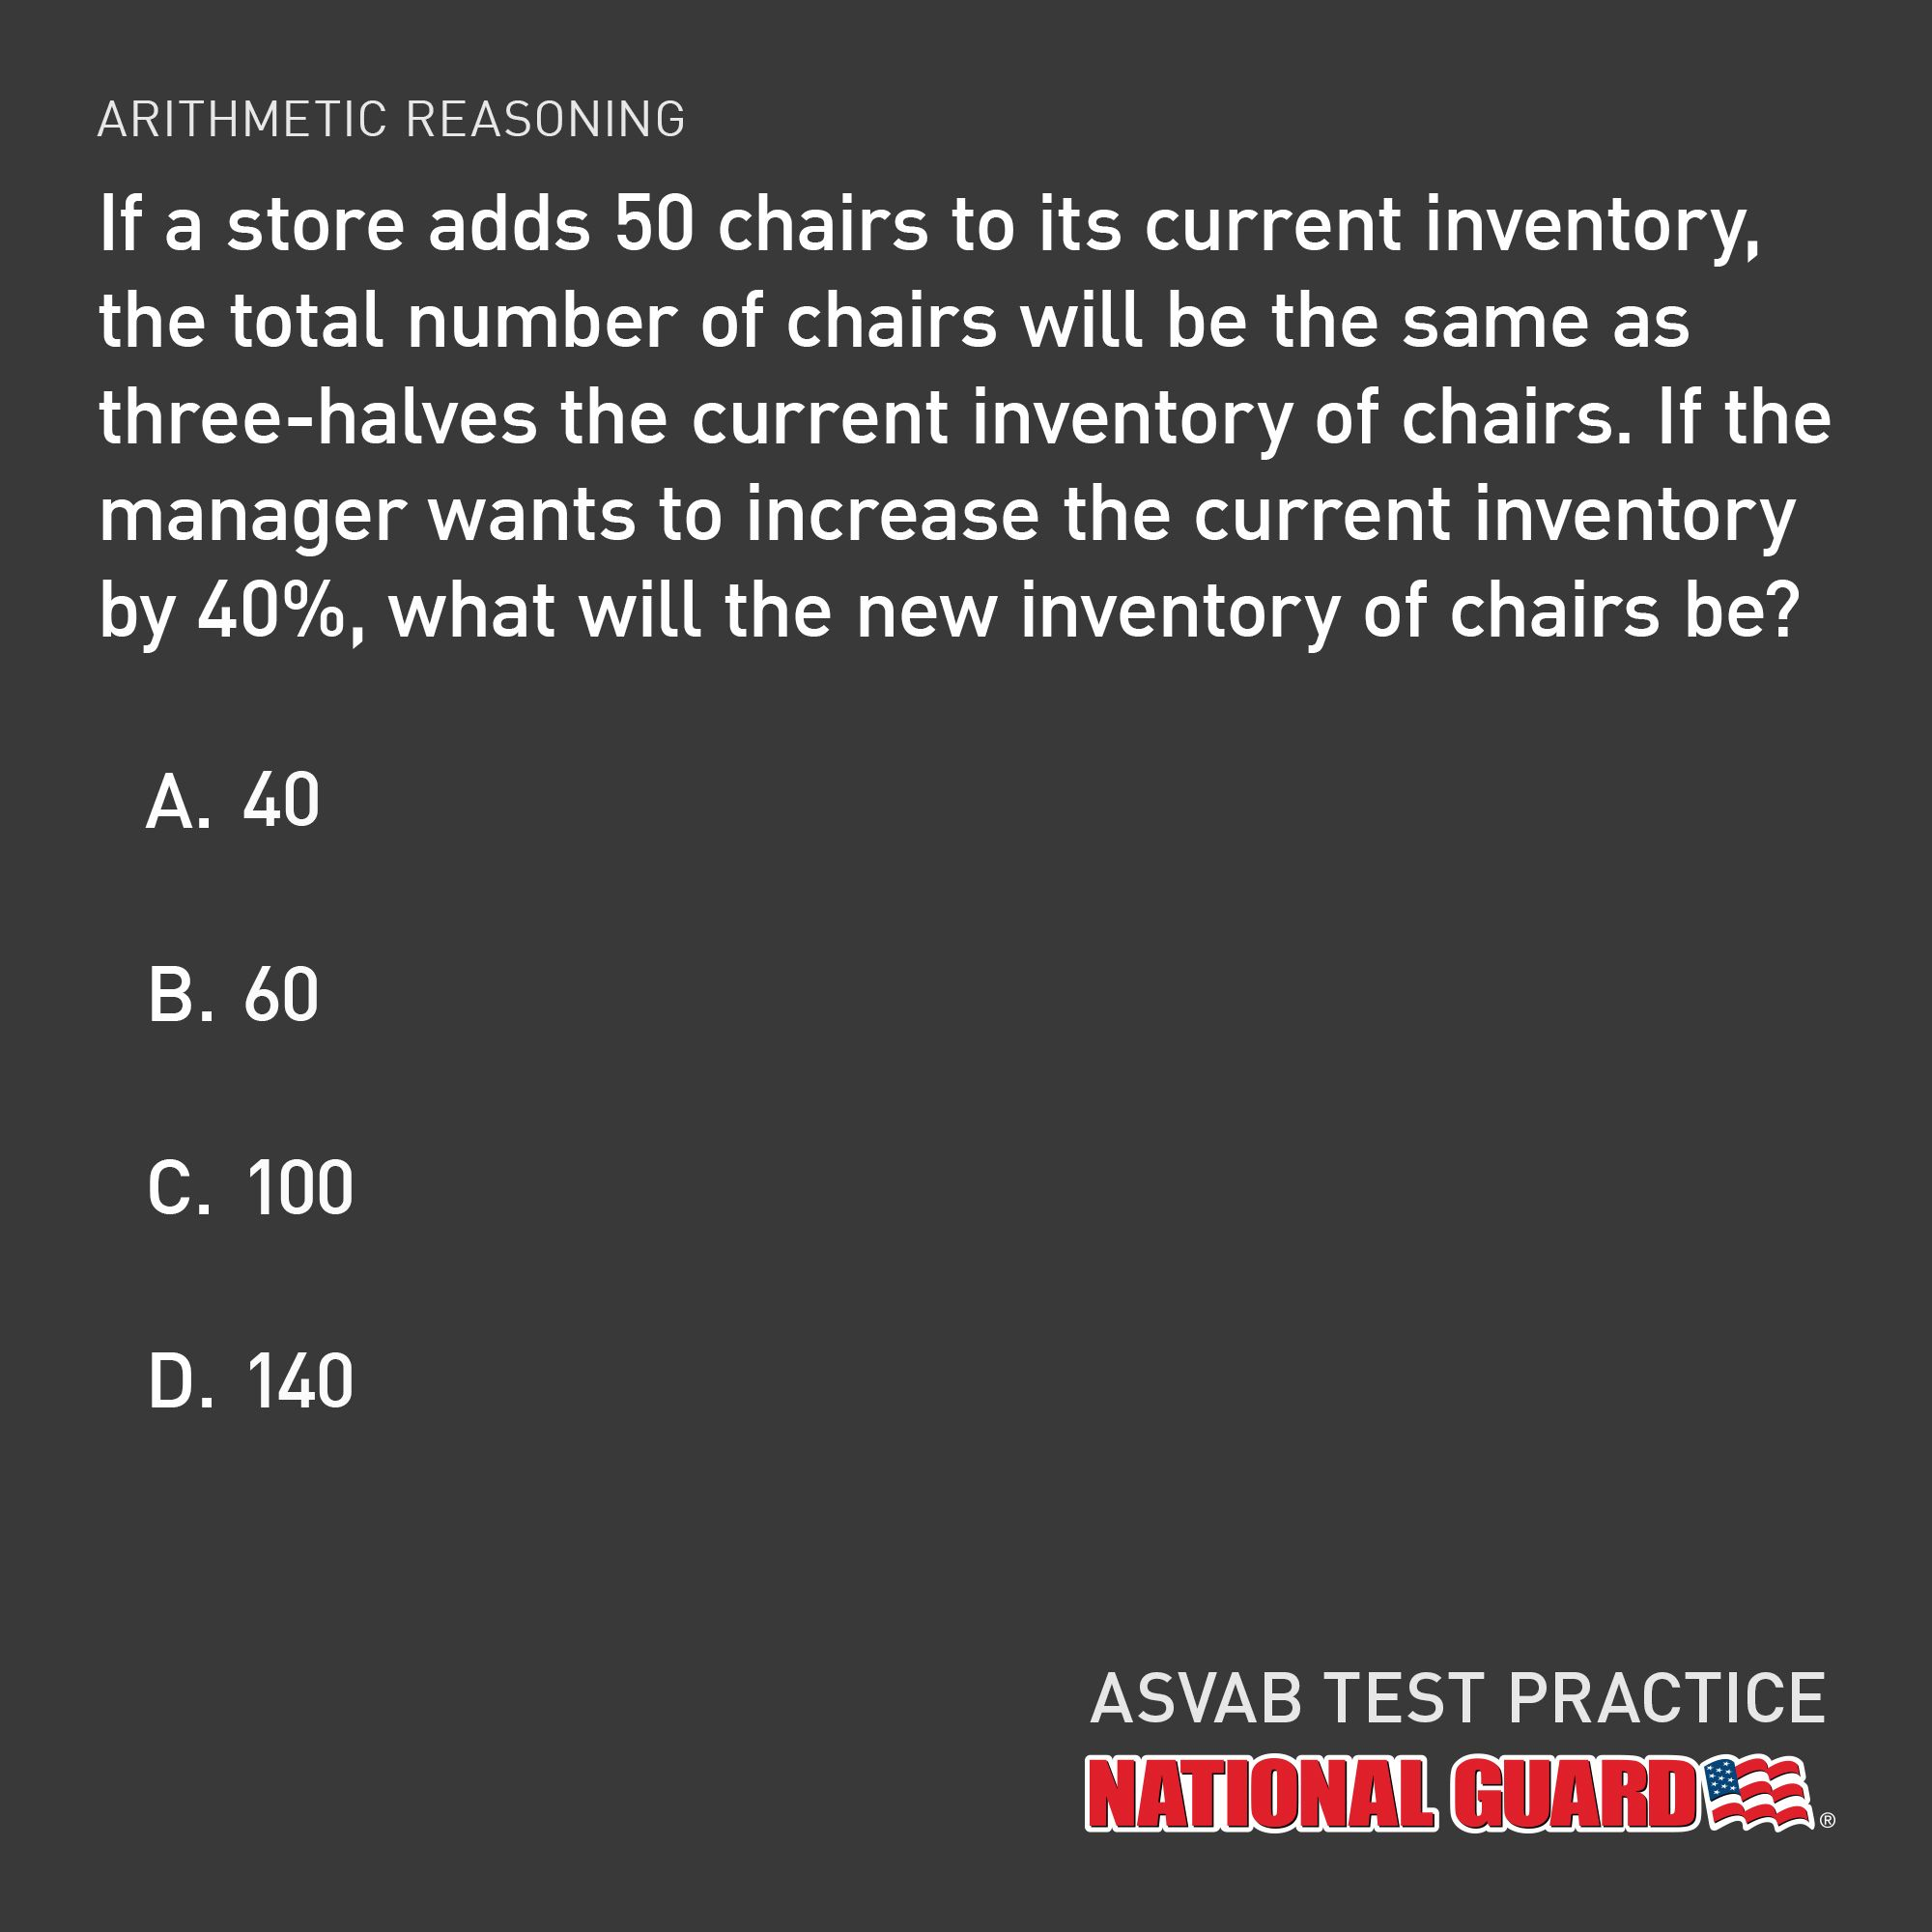 ANSWER! D 140 Army national guard, National guard